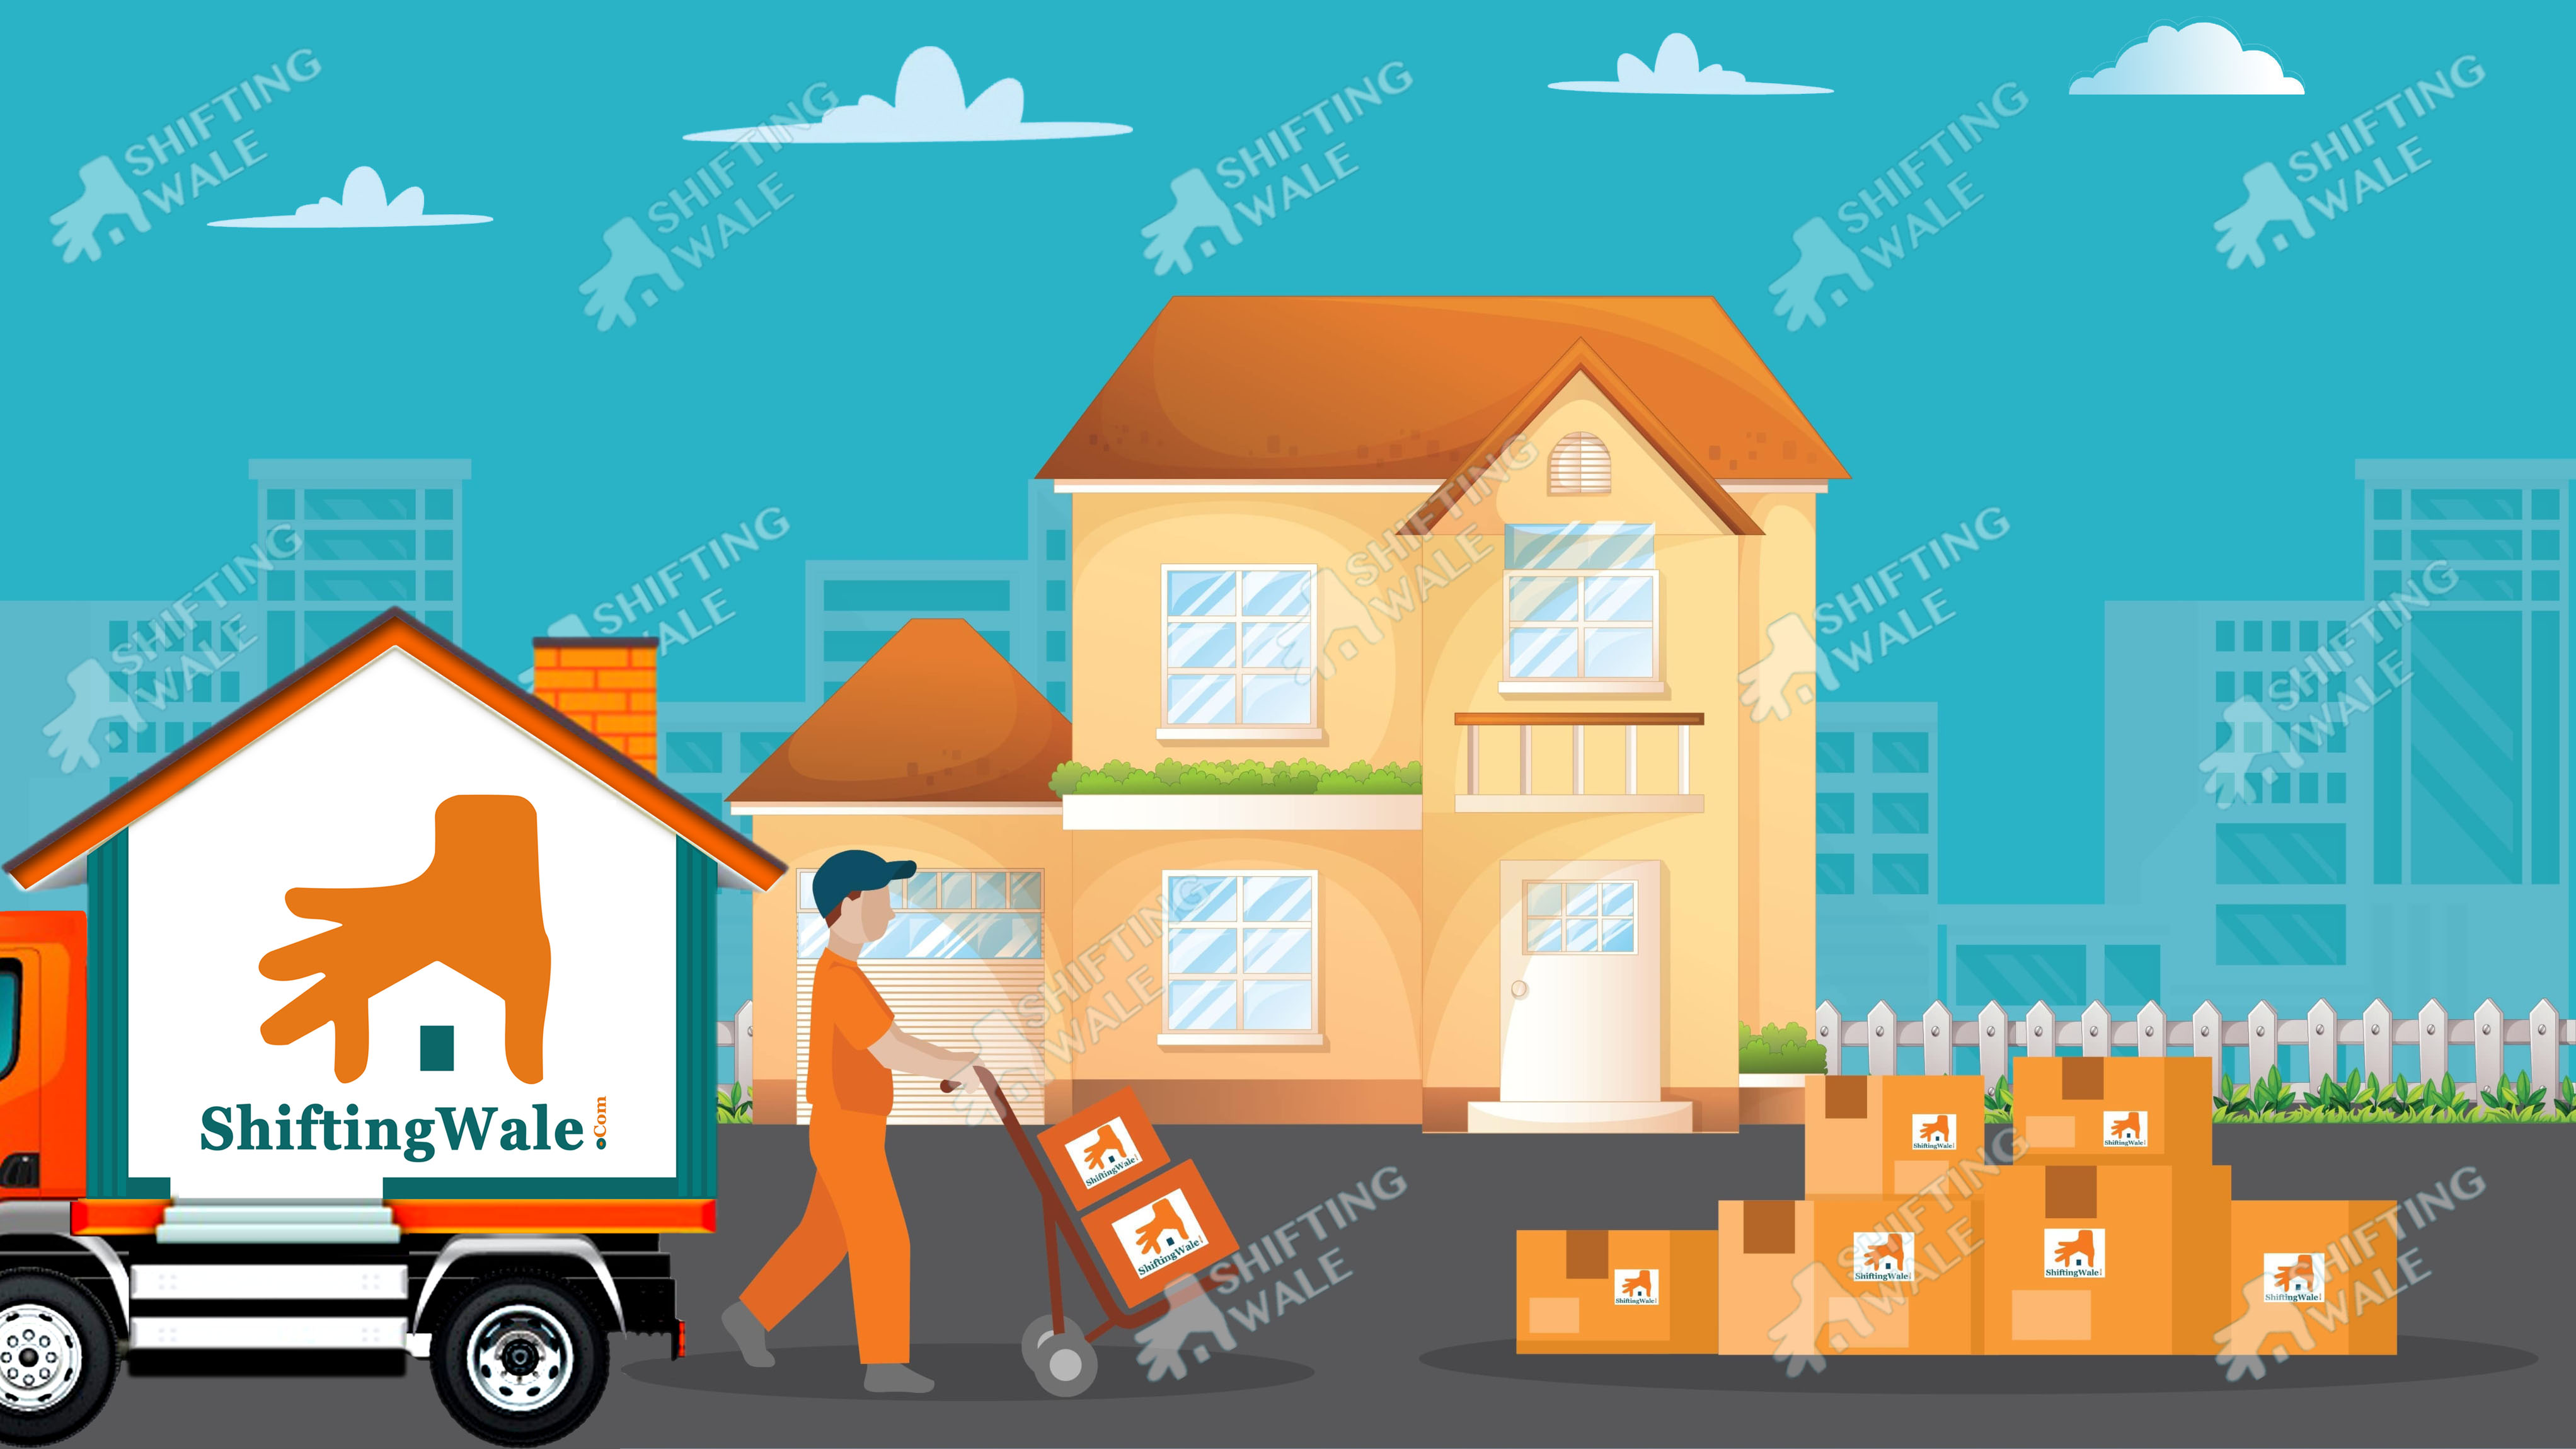 Ahmedabad To Haldwani Trusted Packers and Movers Get Free Quotation with Best Price